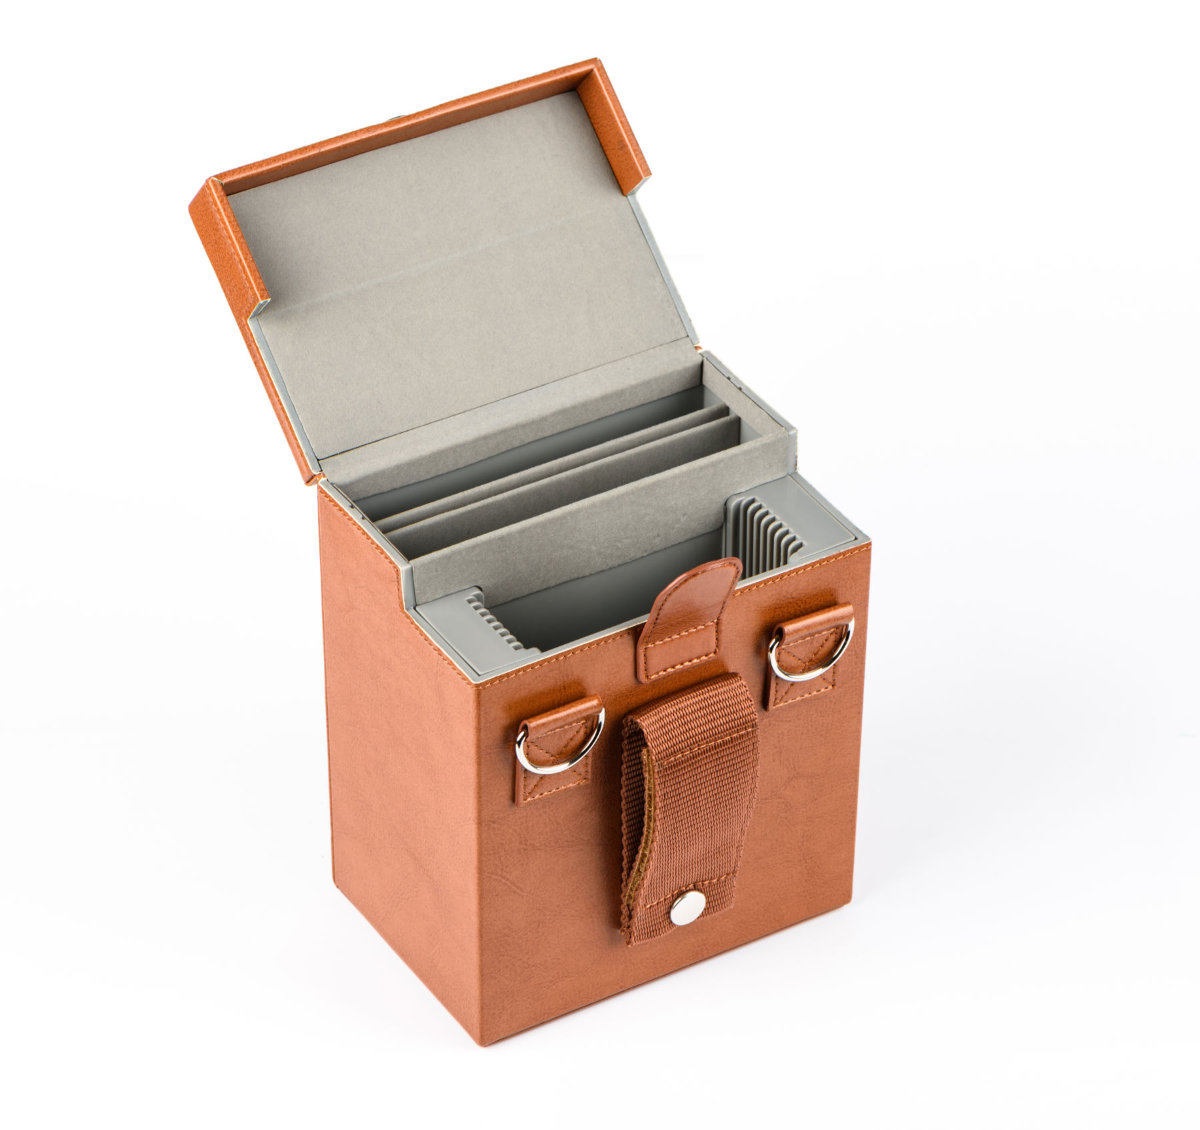 100mm-system-all-in-one-case_01